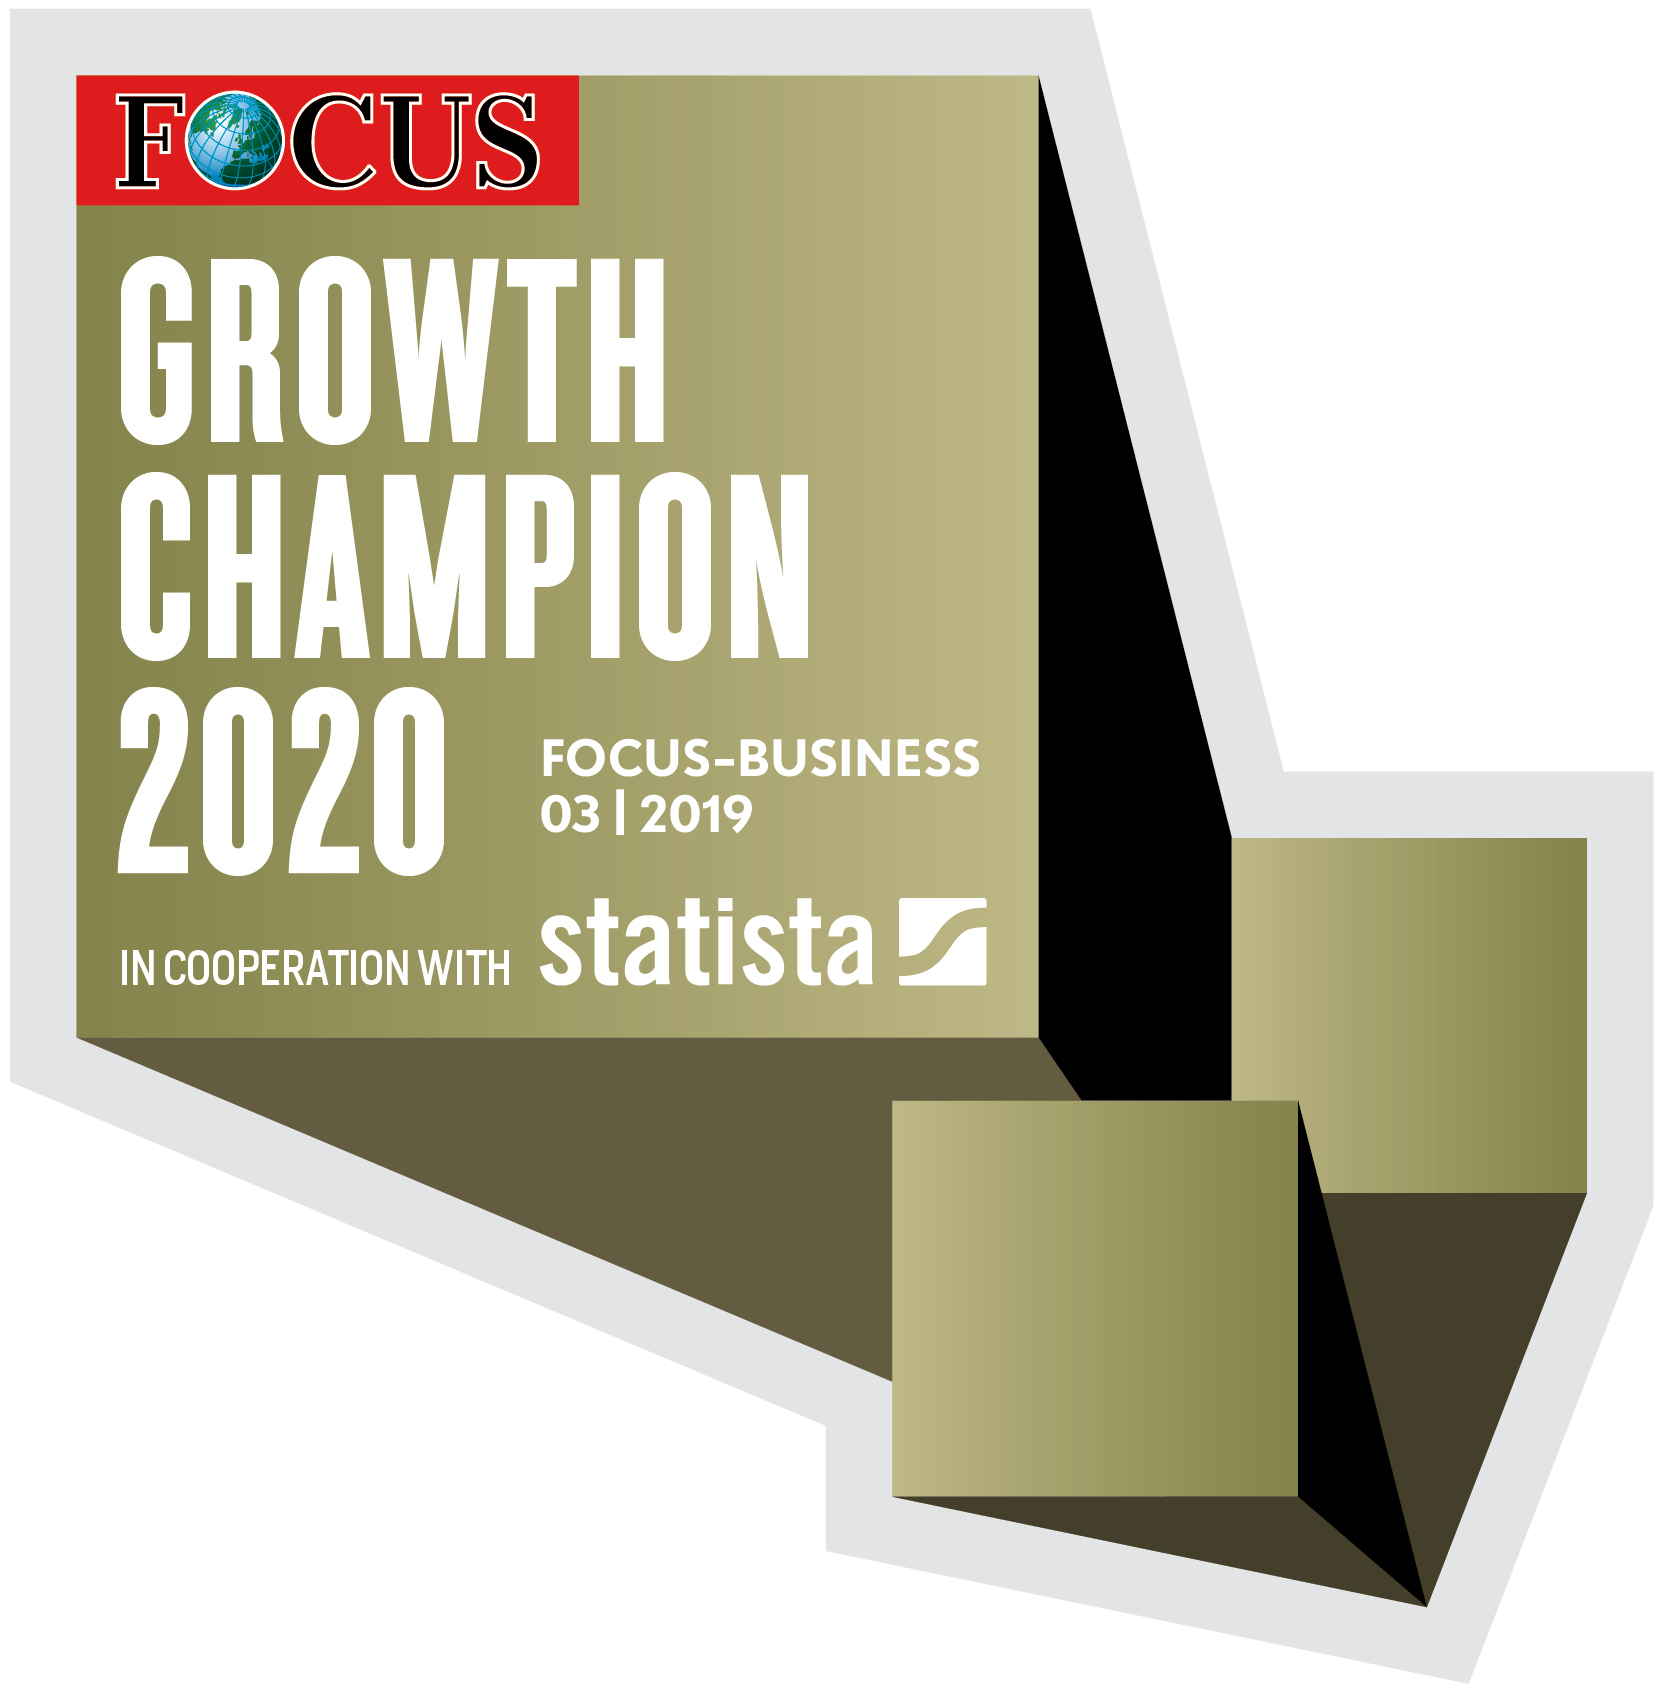 Growth Champion 2020